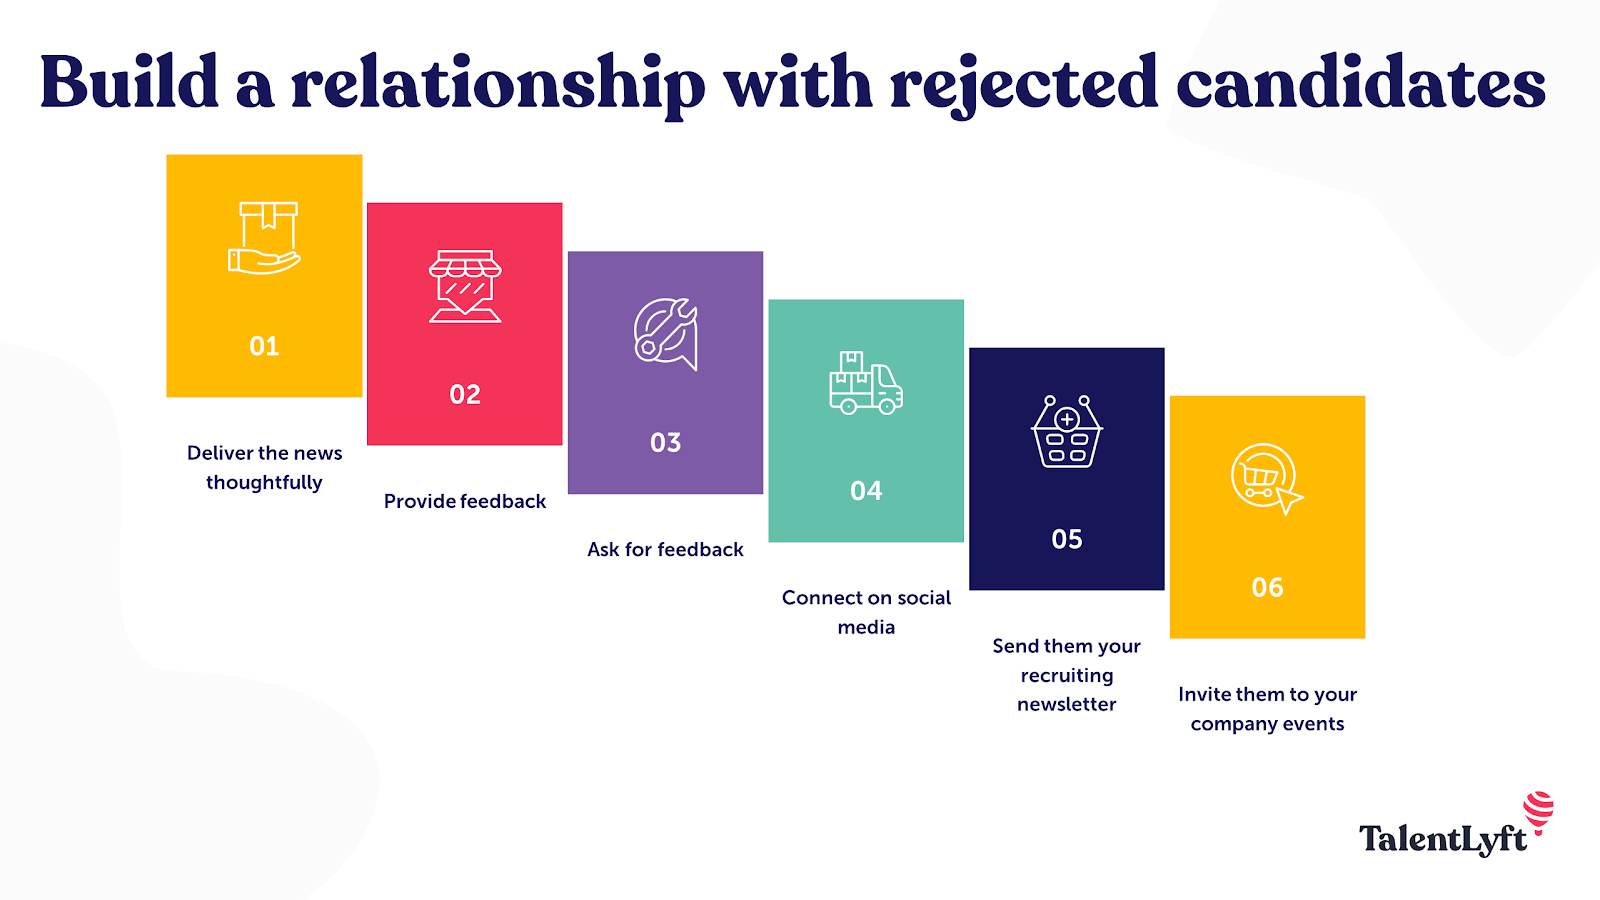 turn rejected candidates into employer brand ambassadors